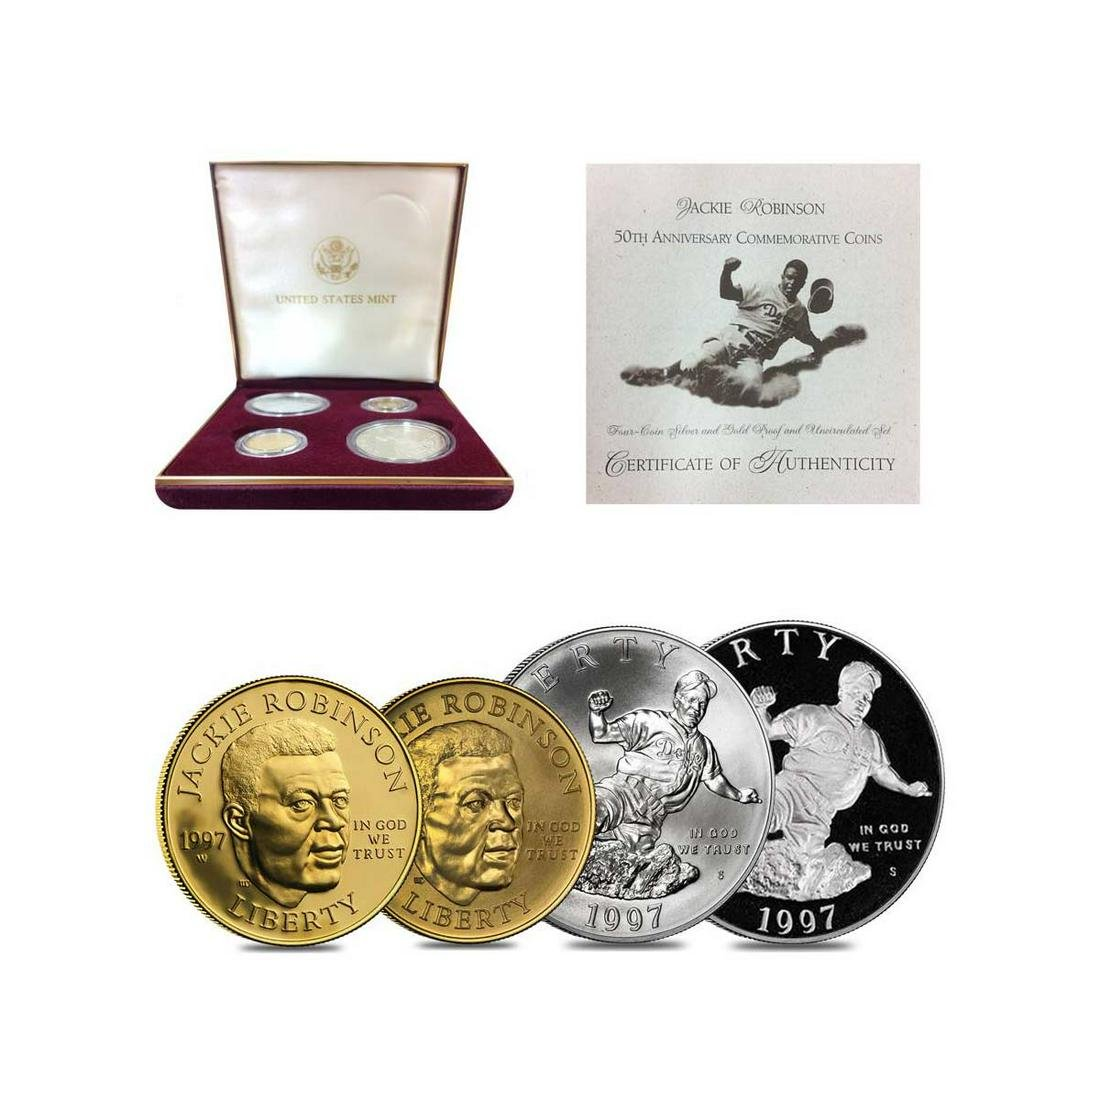 JACKIE ROBINSON COMMEMORATIVE GOLD SILVER PROOF SET